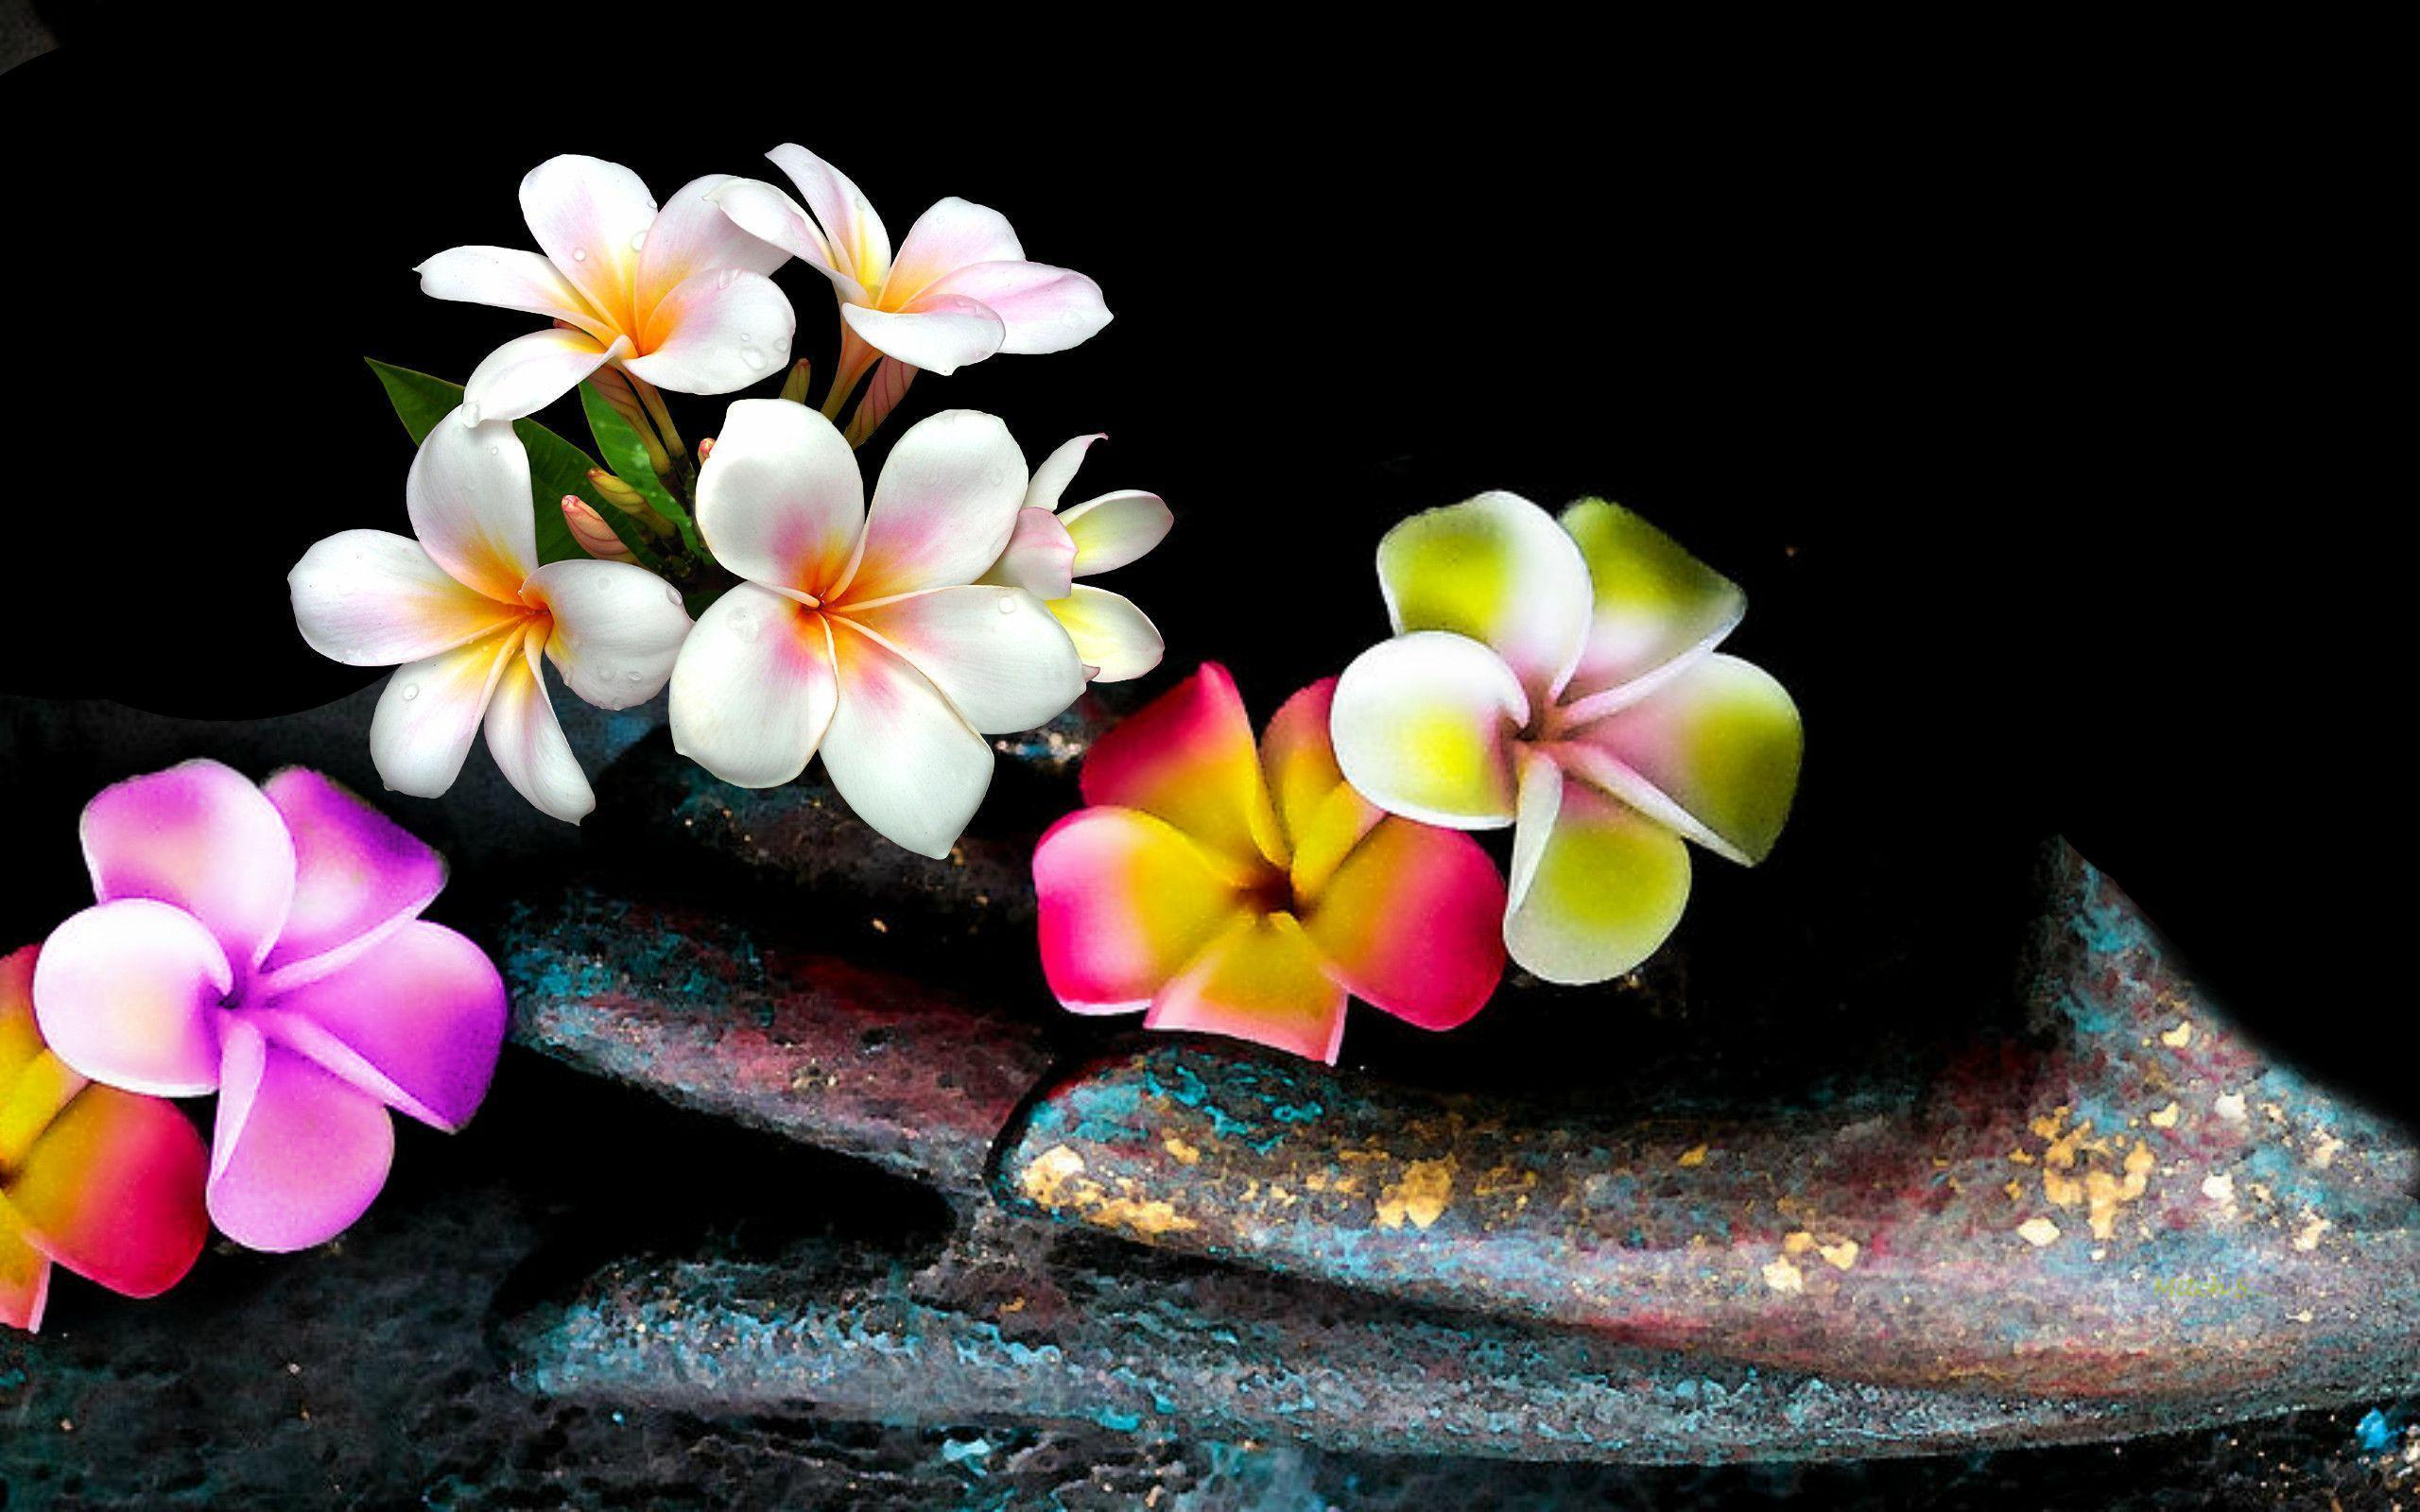 Plumeria Backgrounds Wallpaper Cave HD Wallpapers Download Free Images Wallpaper [1000image.com]